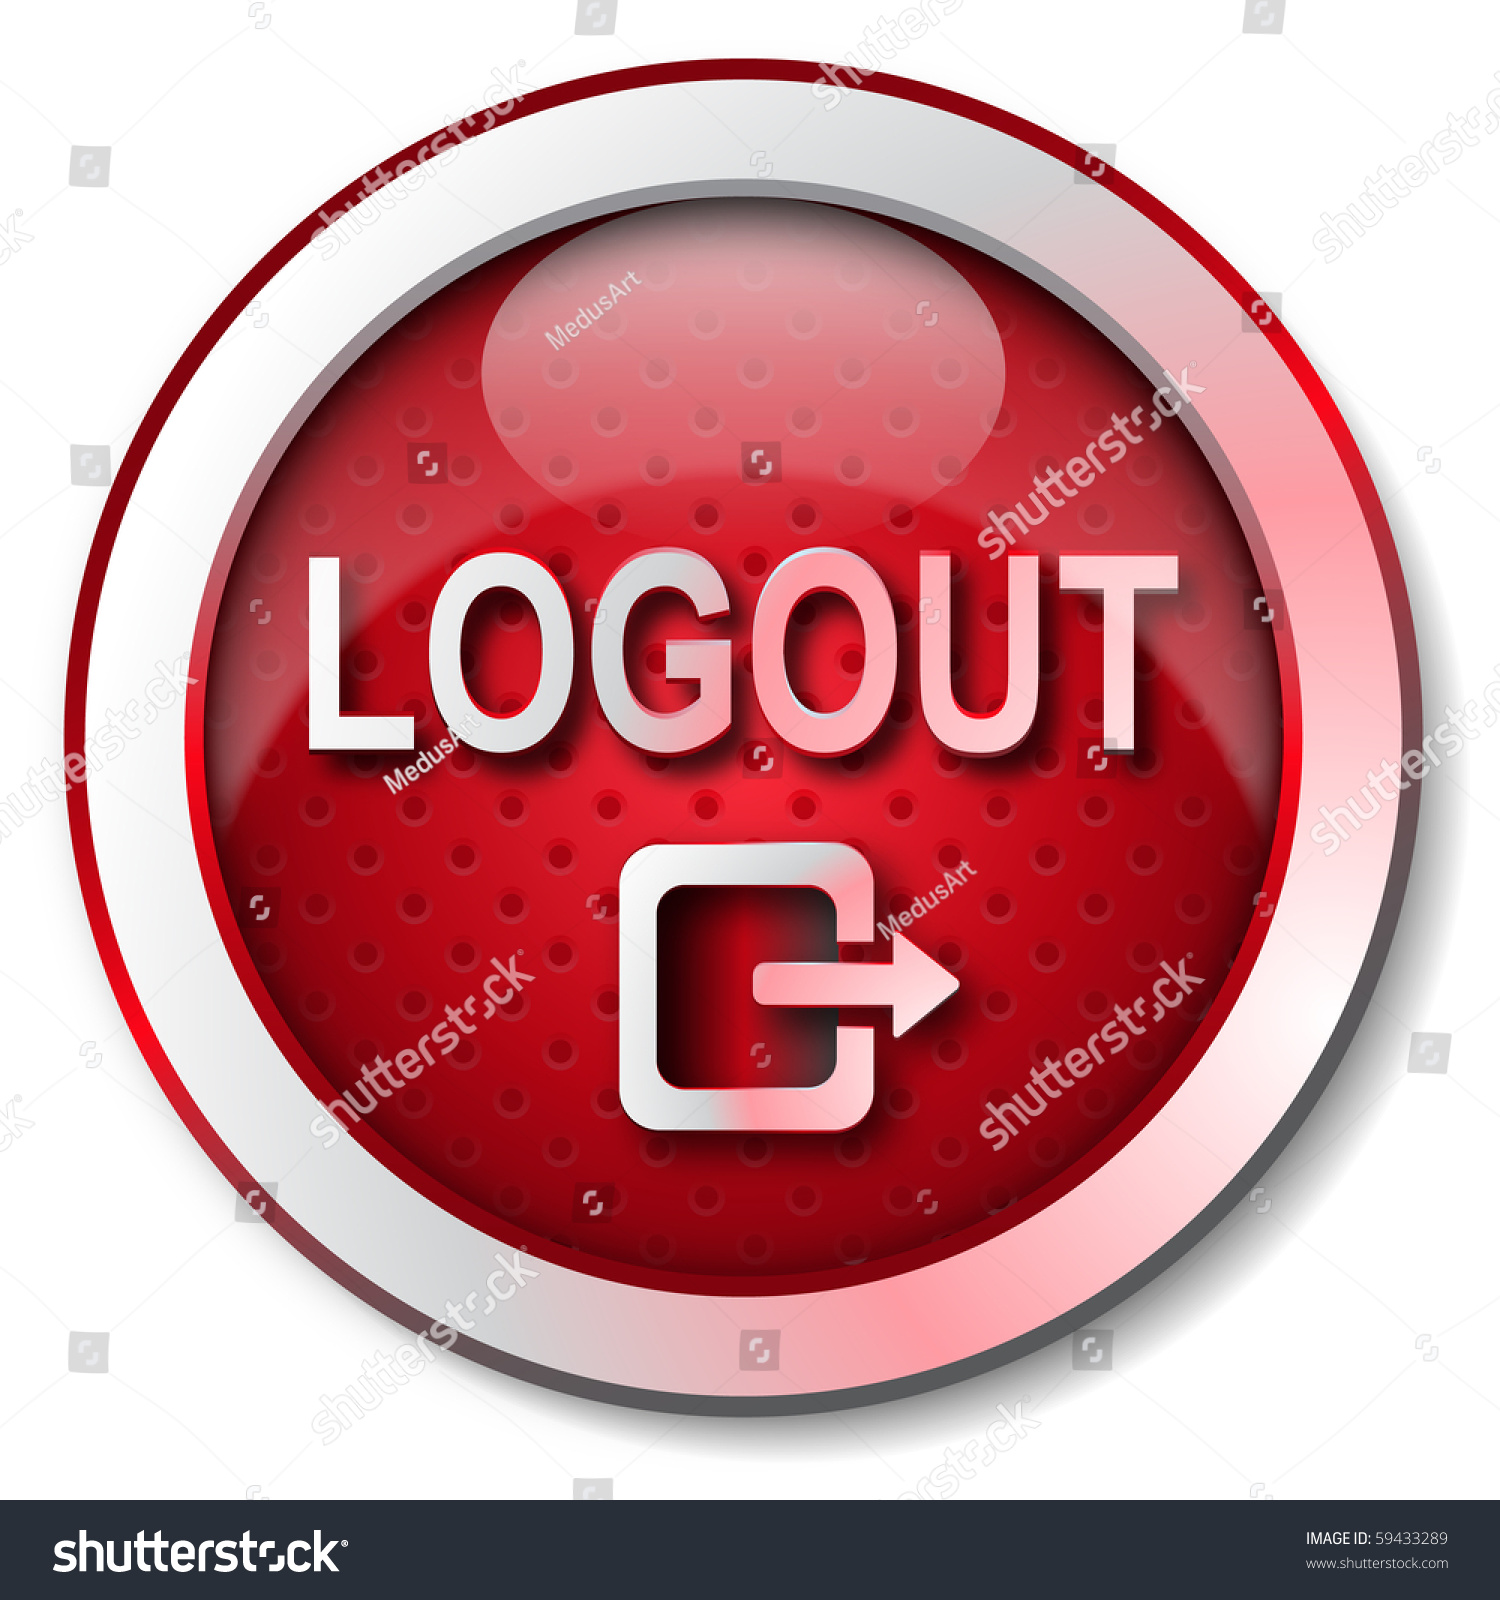 Logout Icon Stock Illustration 59433289 - Shutterstock